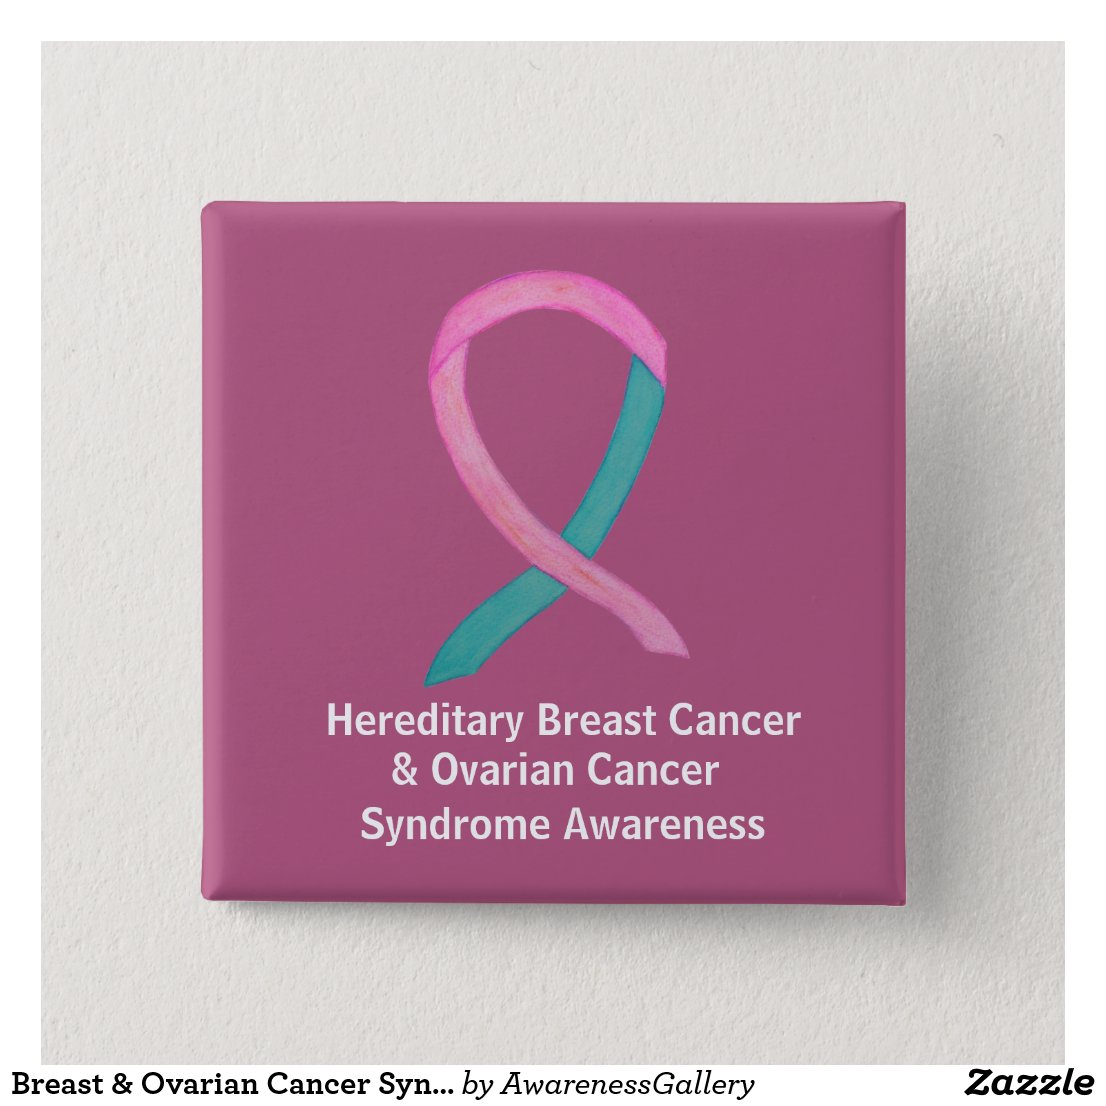 Breast & Ovarian Cancer Syndrome Awareness Pins